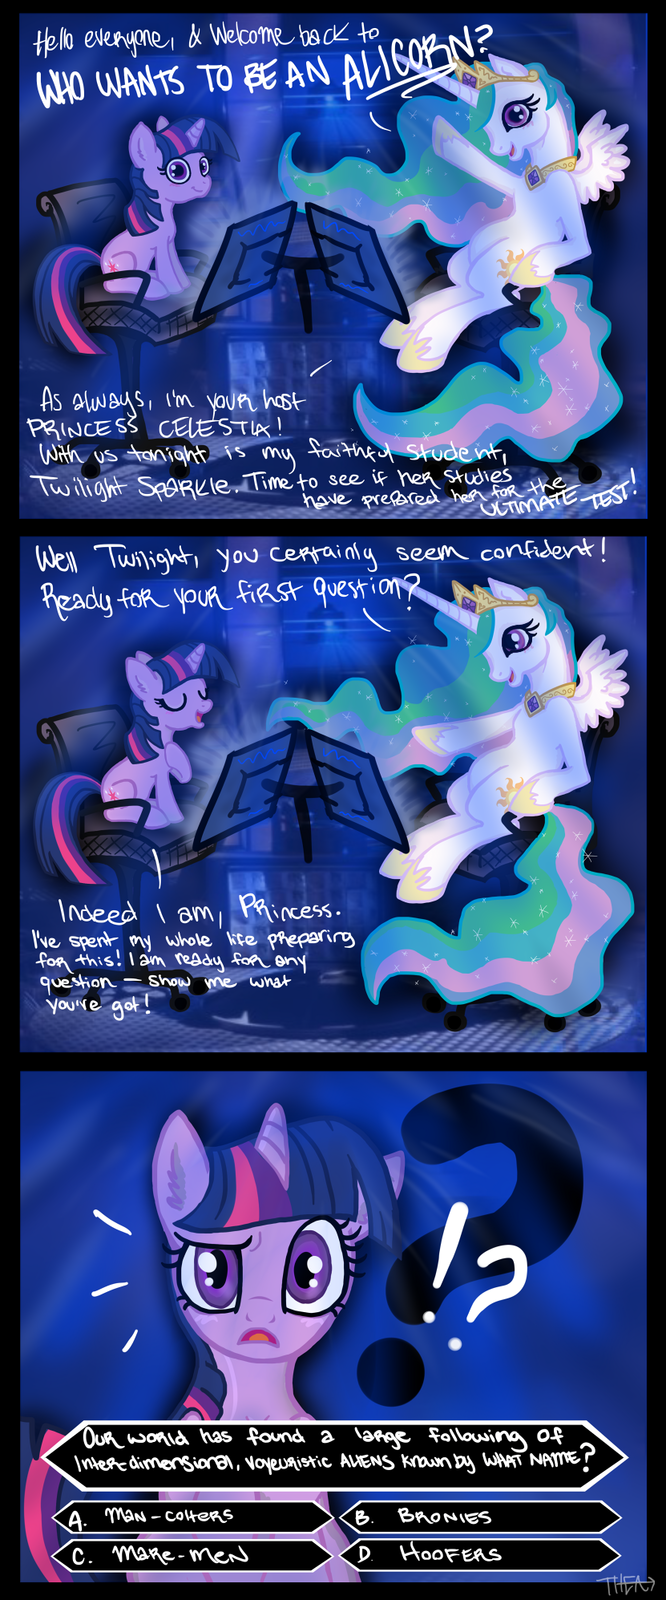 Who Wants To Be An Alicorn?